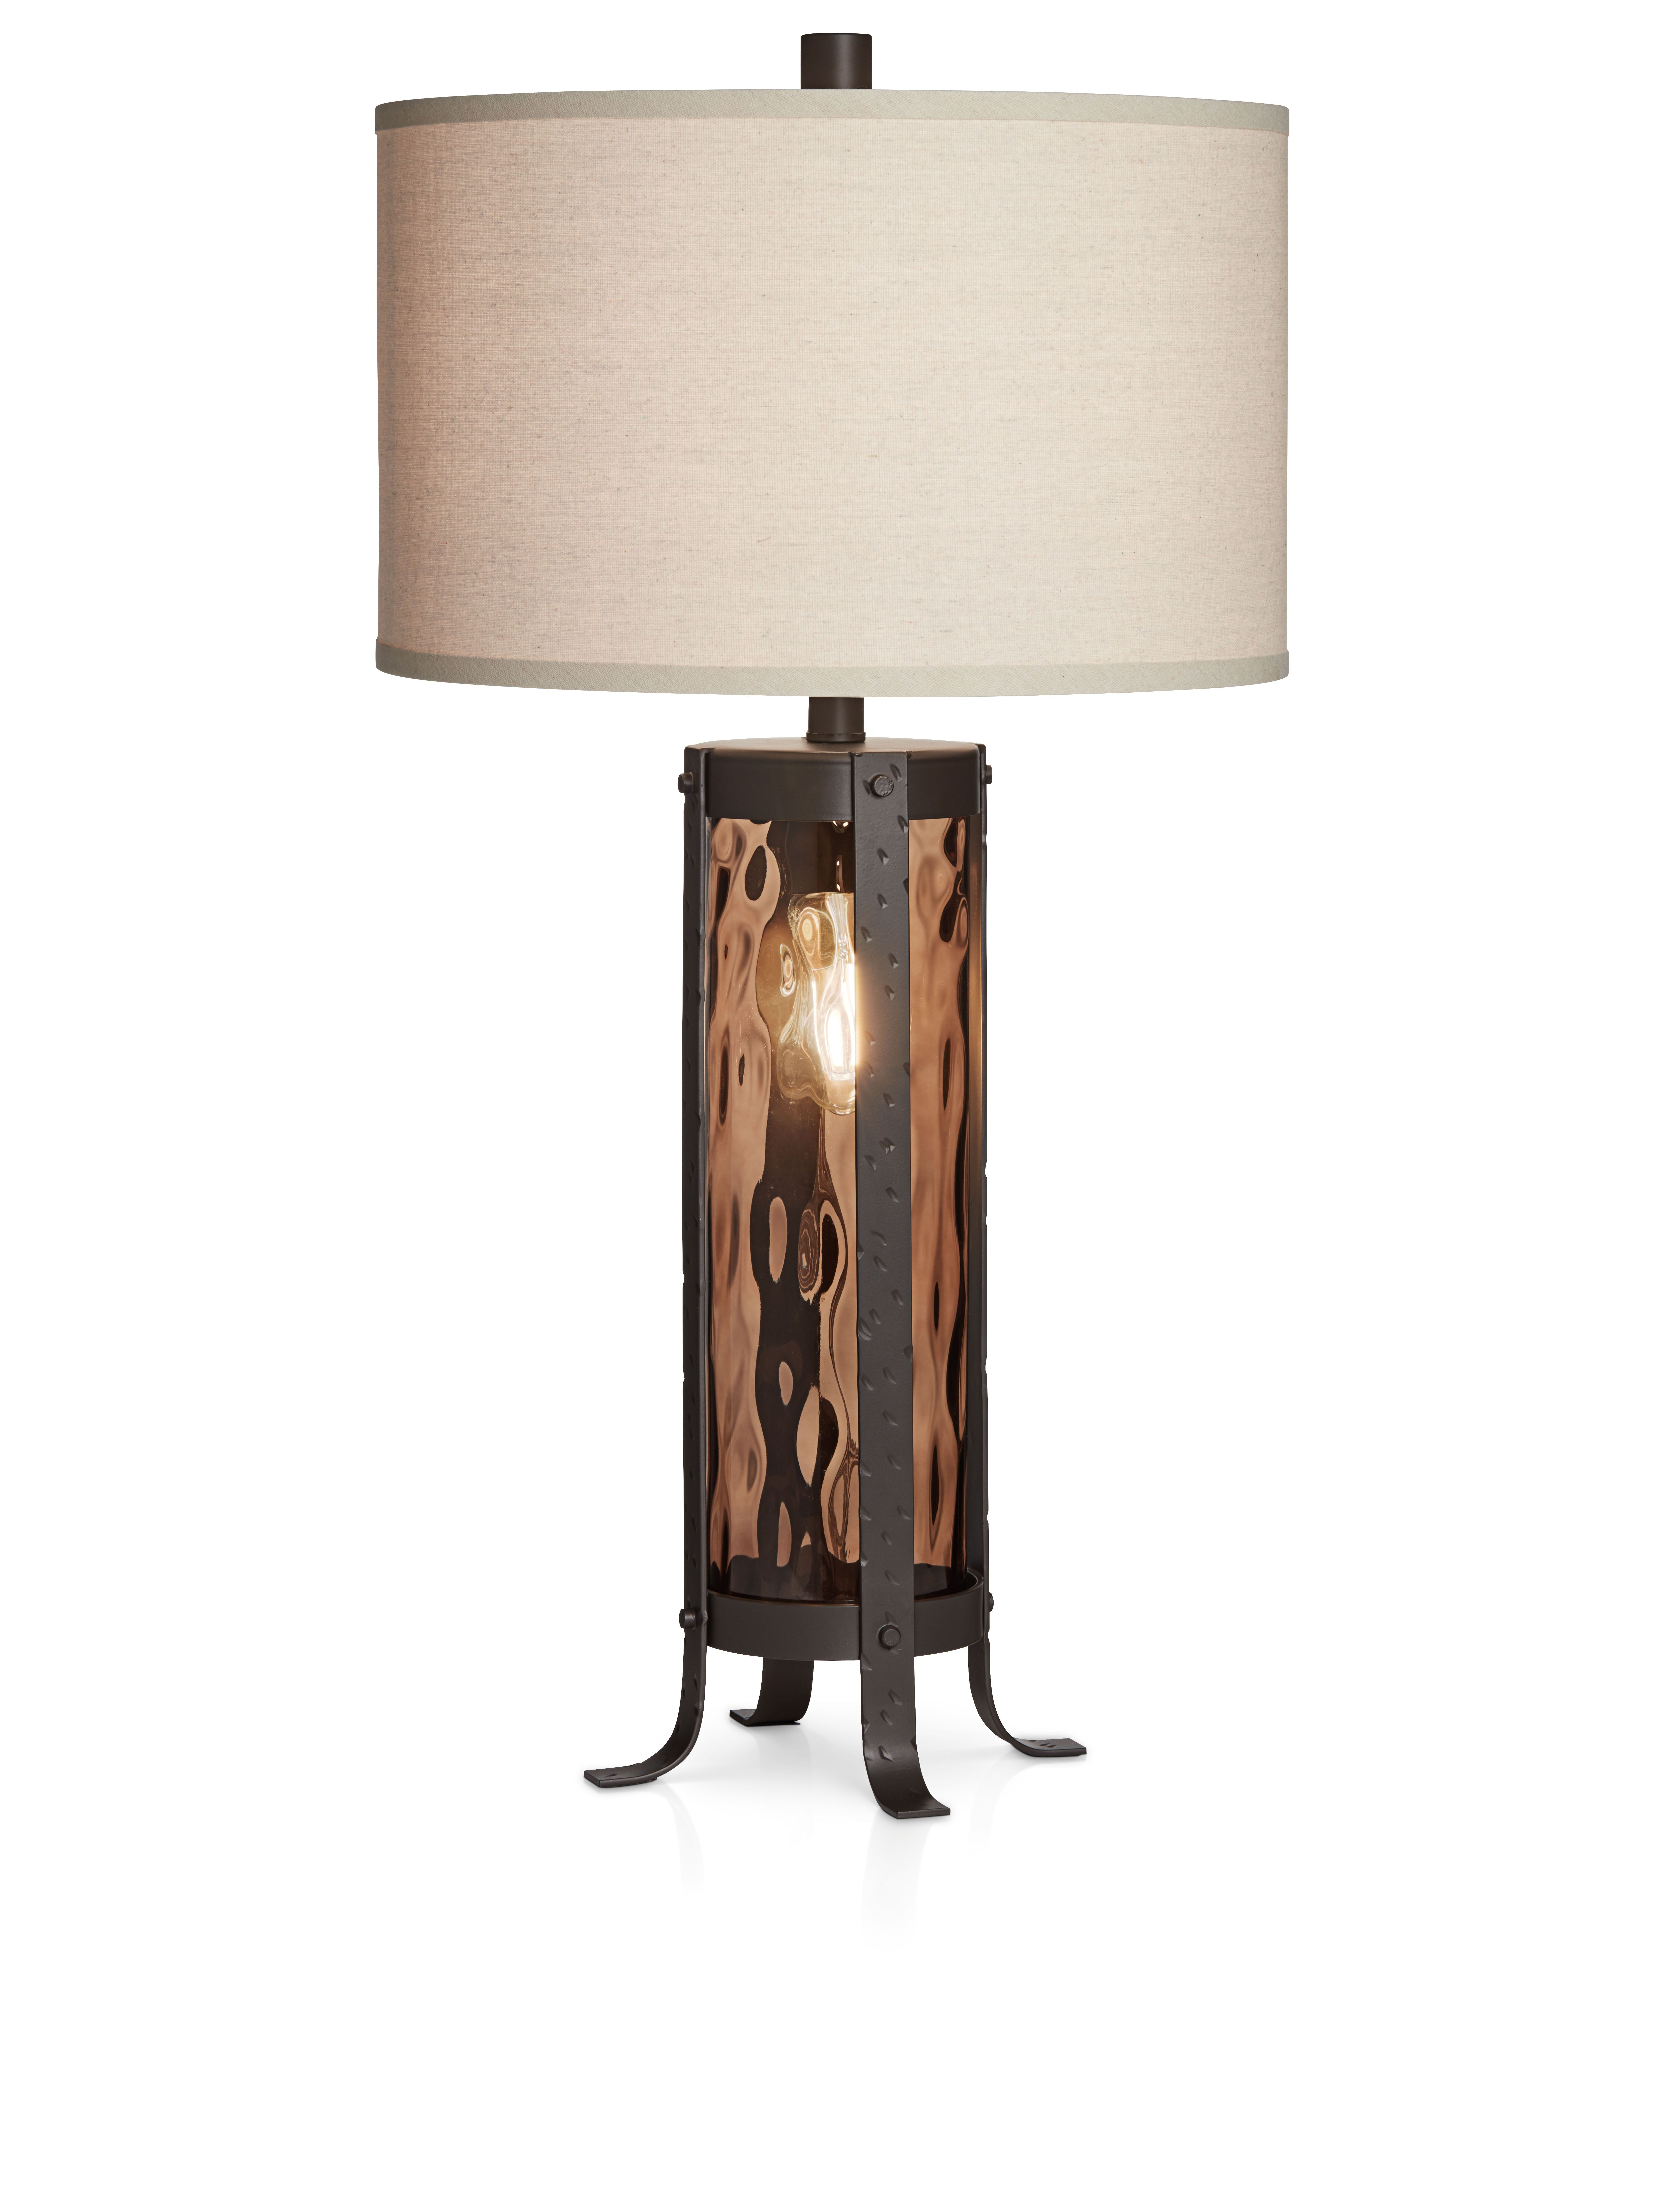 Lodge and rustic inspired table lamp with a built in nightlight.  #lodge #rustic #lodgeandrustic #lodgestyle #lodgedecor #rusticdecor #lodgehome #rustichome #lighting #lamps #interiordeisgn #home #homedecor #homedecorating #livingroom #livingroomdecor #bedroom #bedroomdecor #homestyling